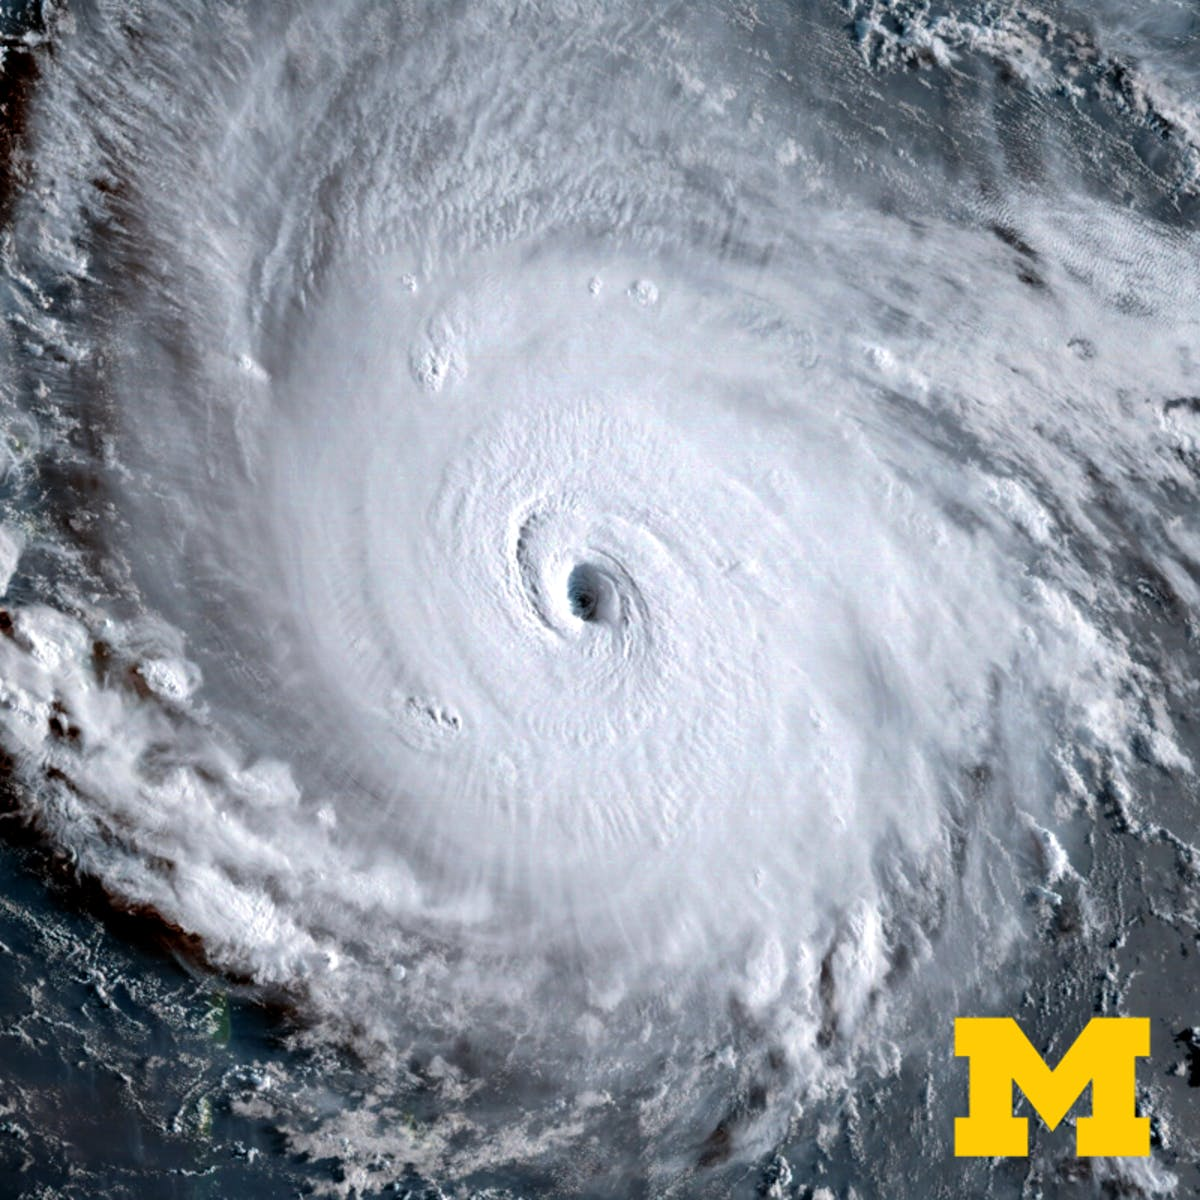 Hurricanes: What's Next?